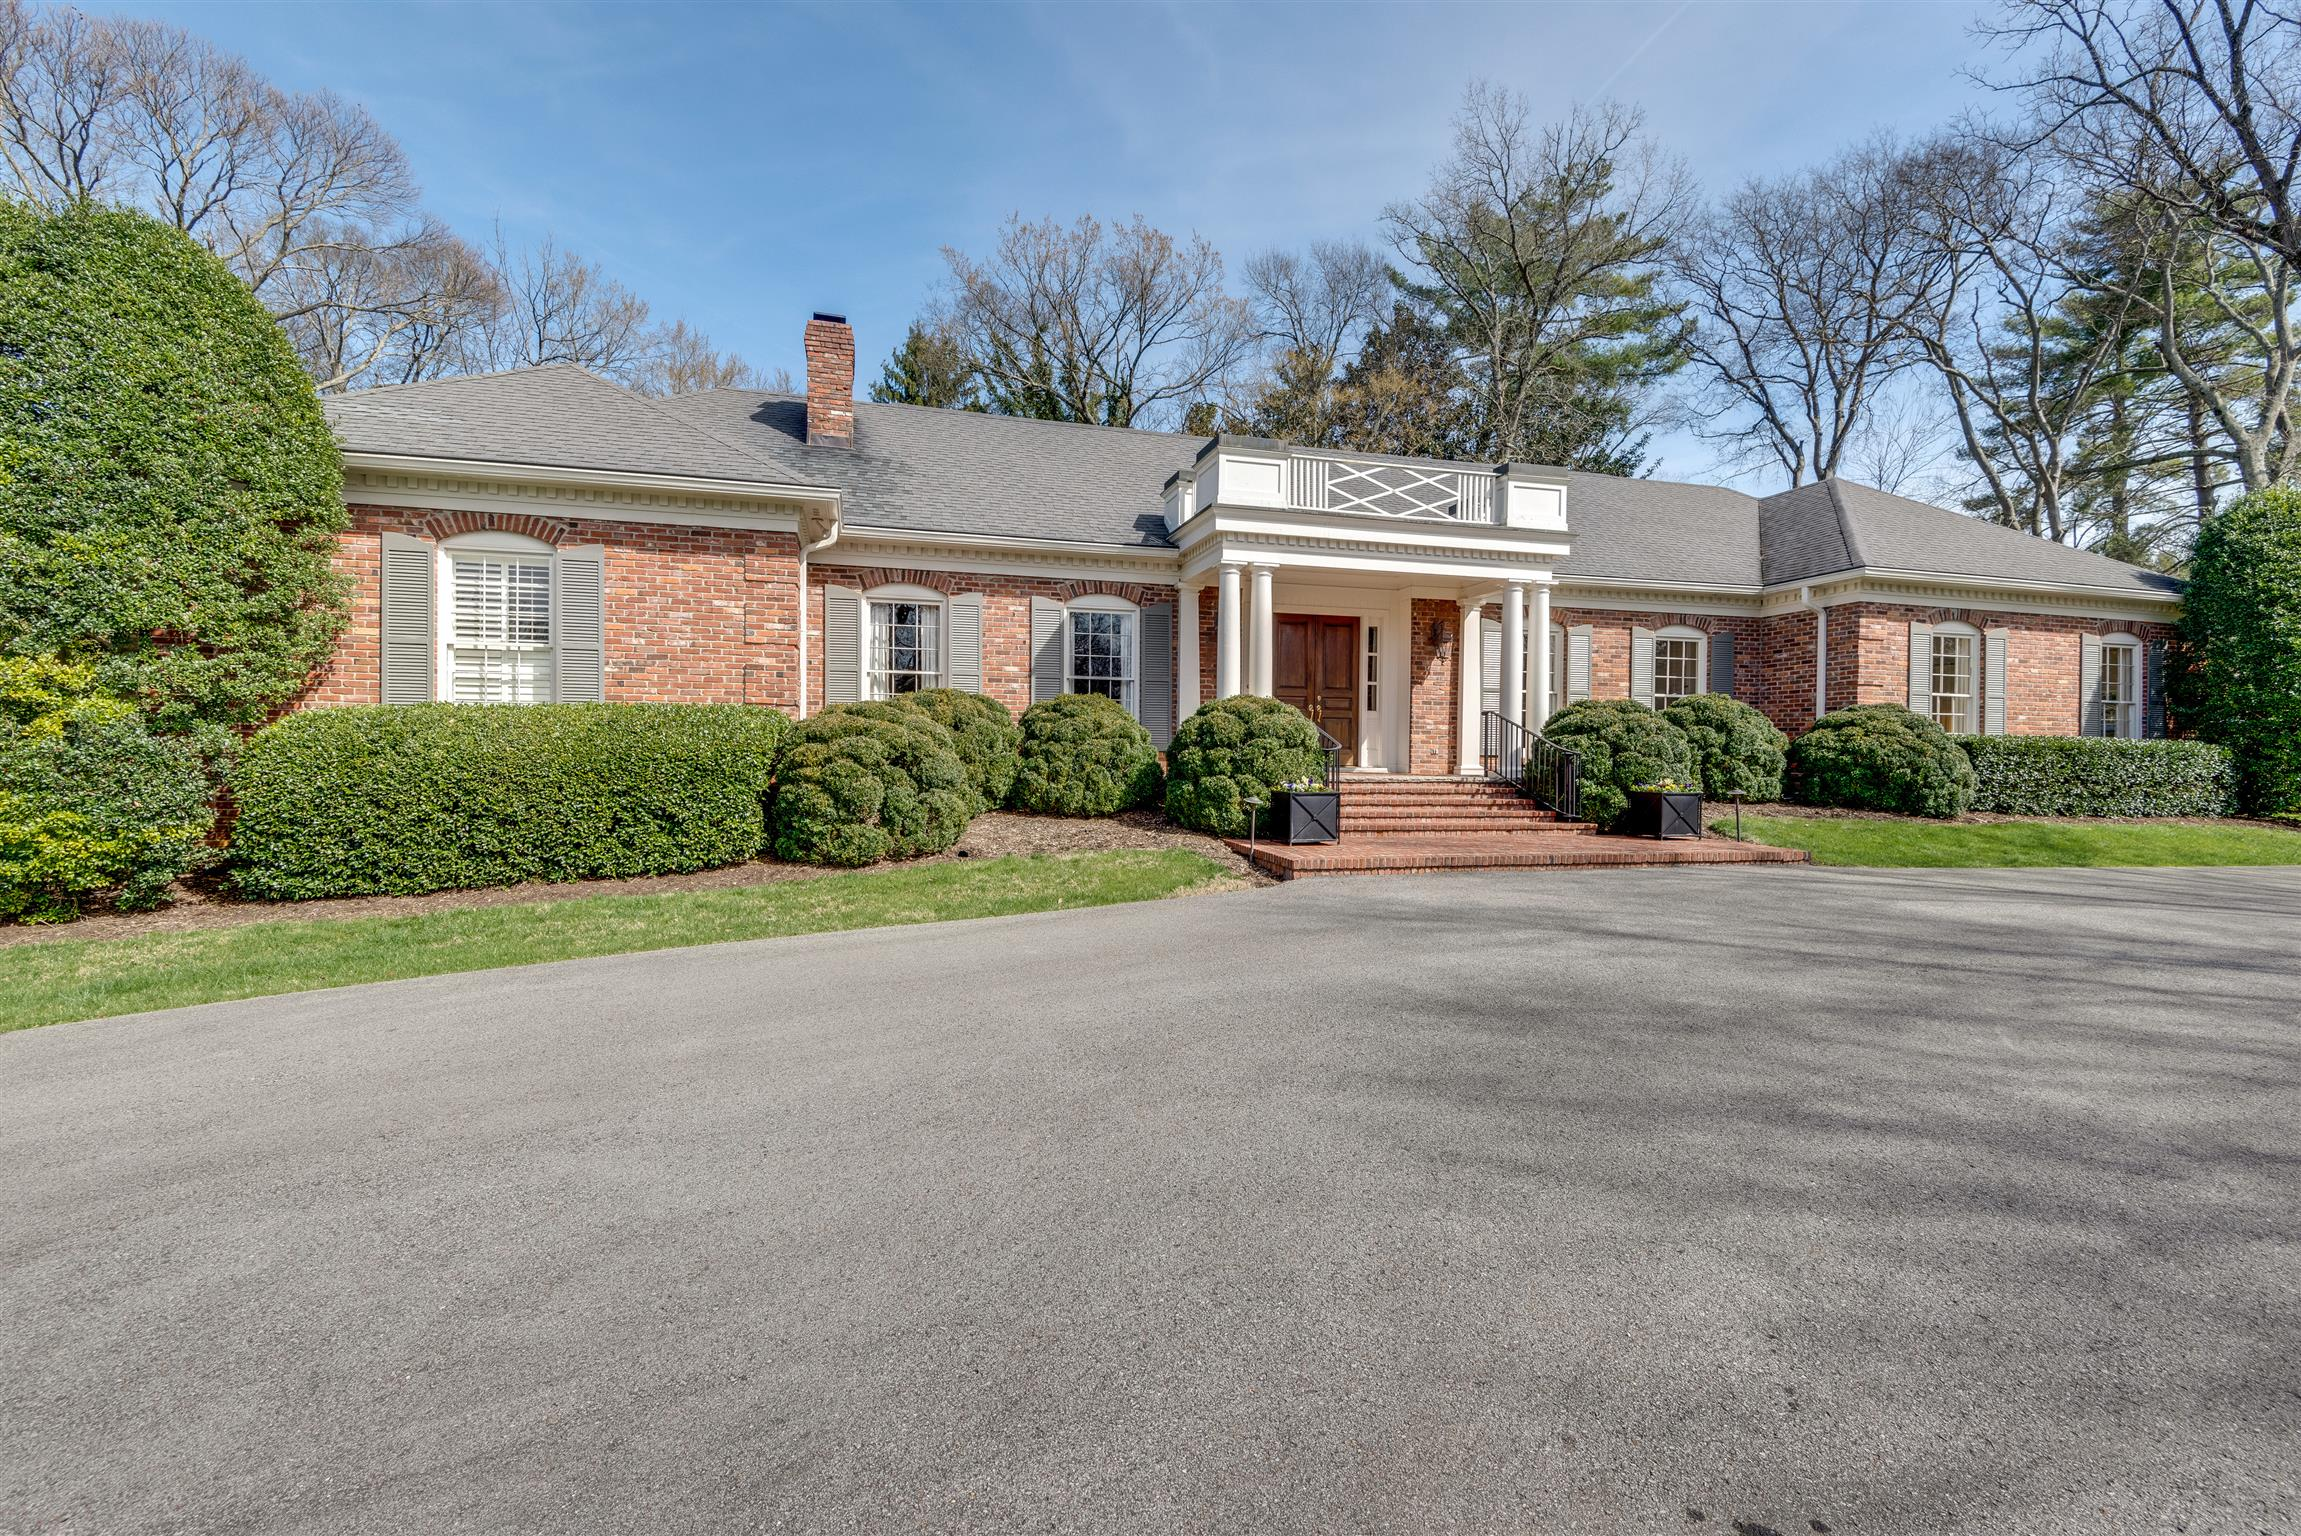 108 Westhampton Pl, Belle Meade, Tennessee